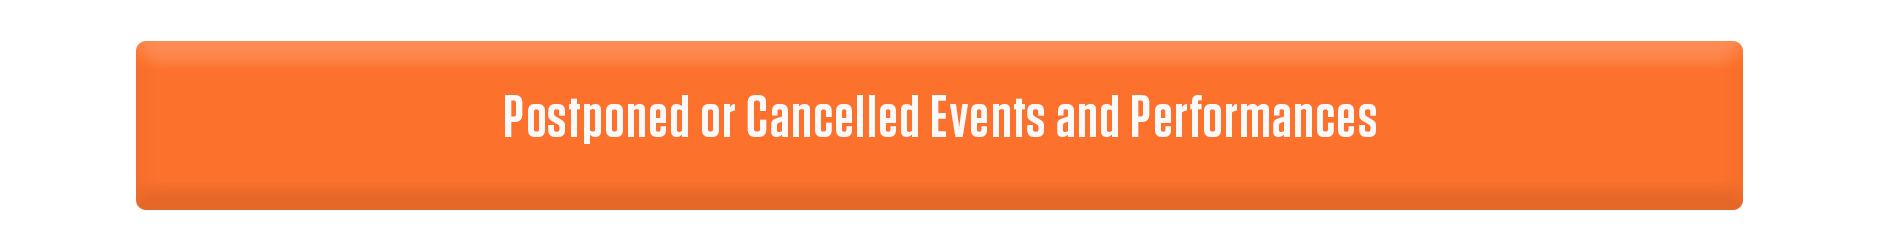 Postponed or Cancelled Events